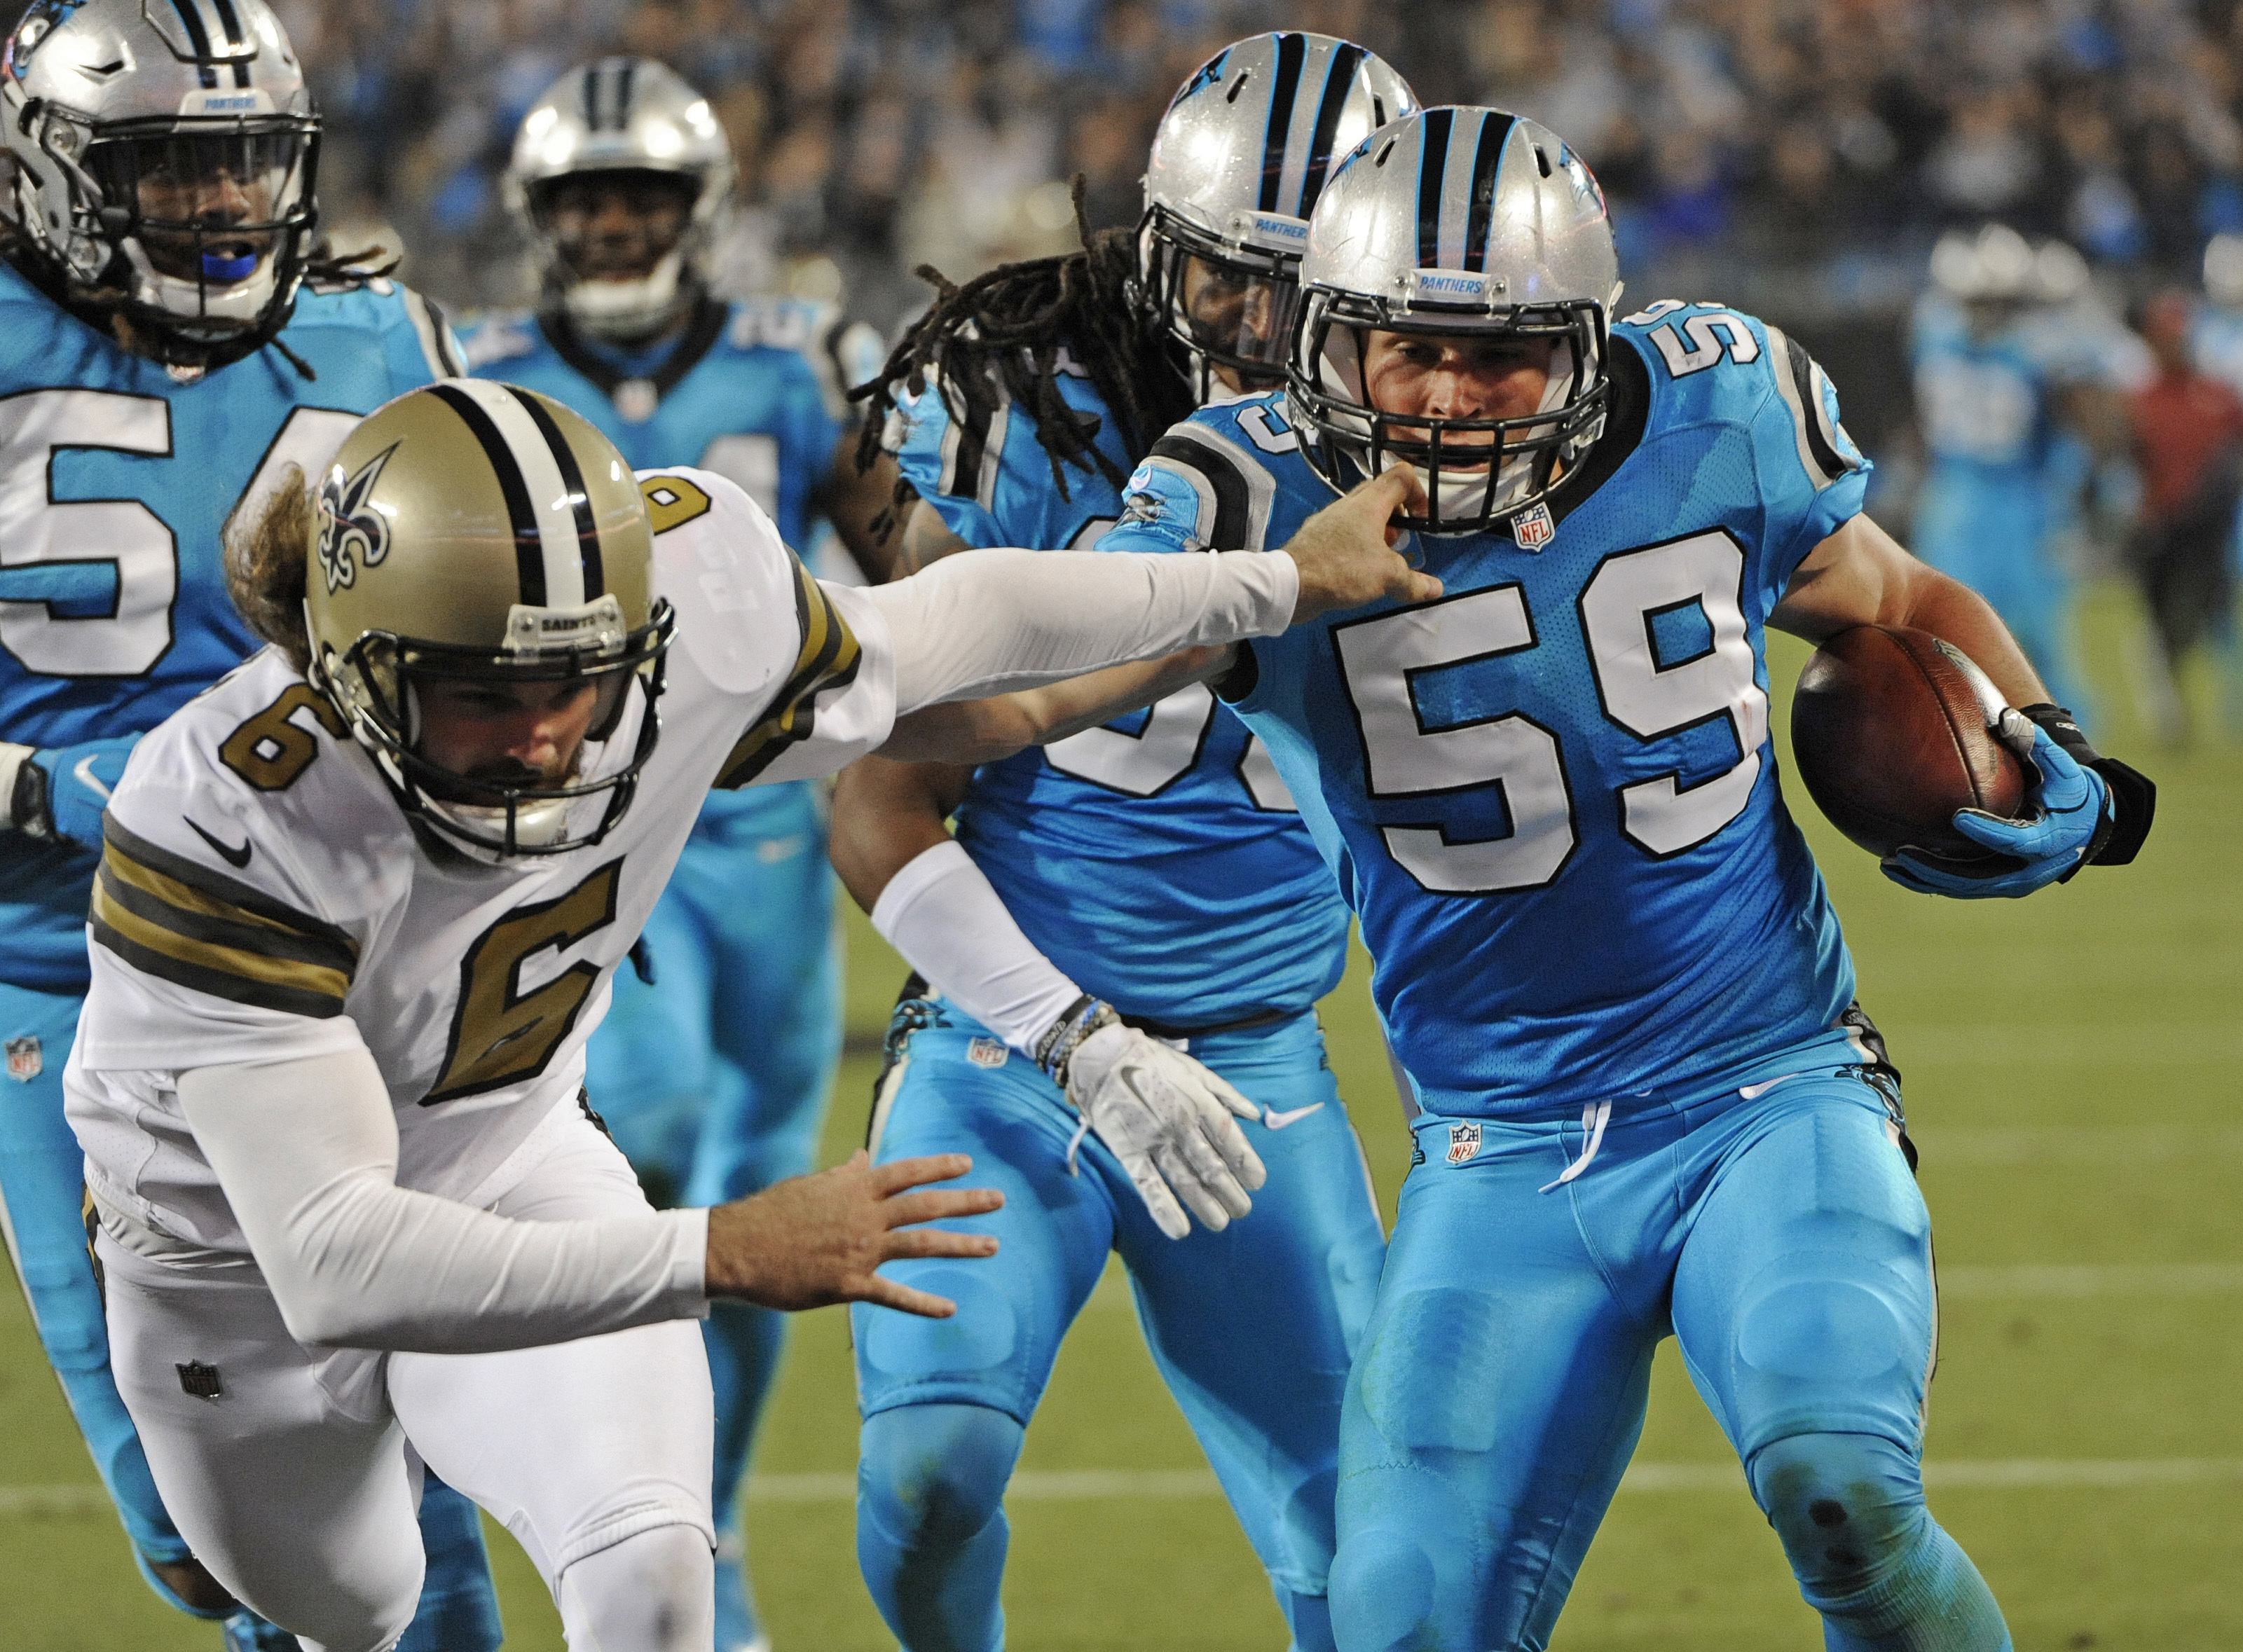 Carolina Panthers' Luke Kuechly (59) runs past New Orleans Saints' Thomas Morstead (6) as he returns a blocked field goal attempt in the first half of an NFL football game in Charlotte, N.C., Thursday, Nov. 17, 2016. (AP Photo/Mike McCarn)